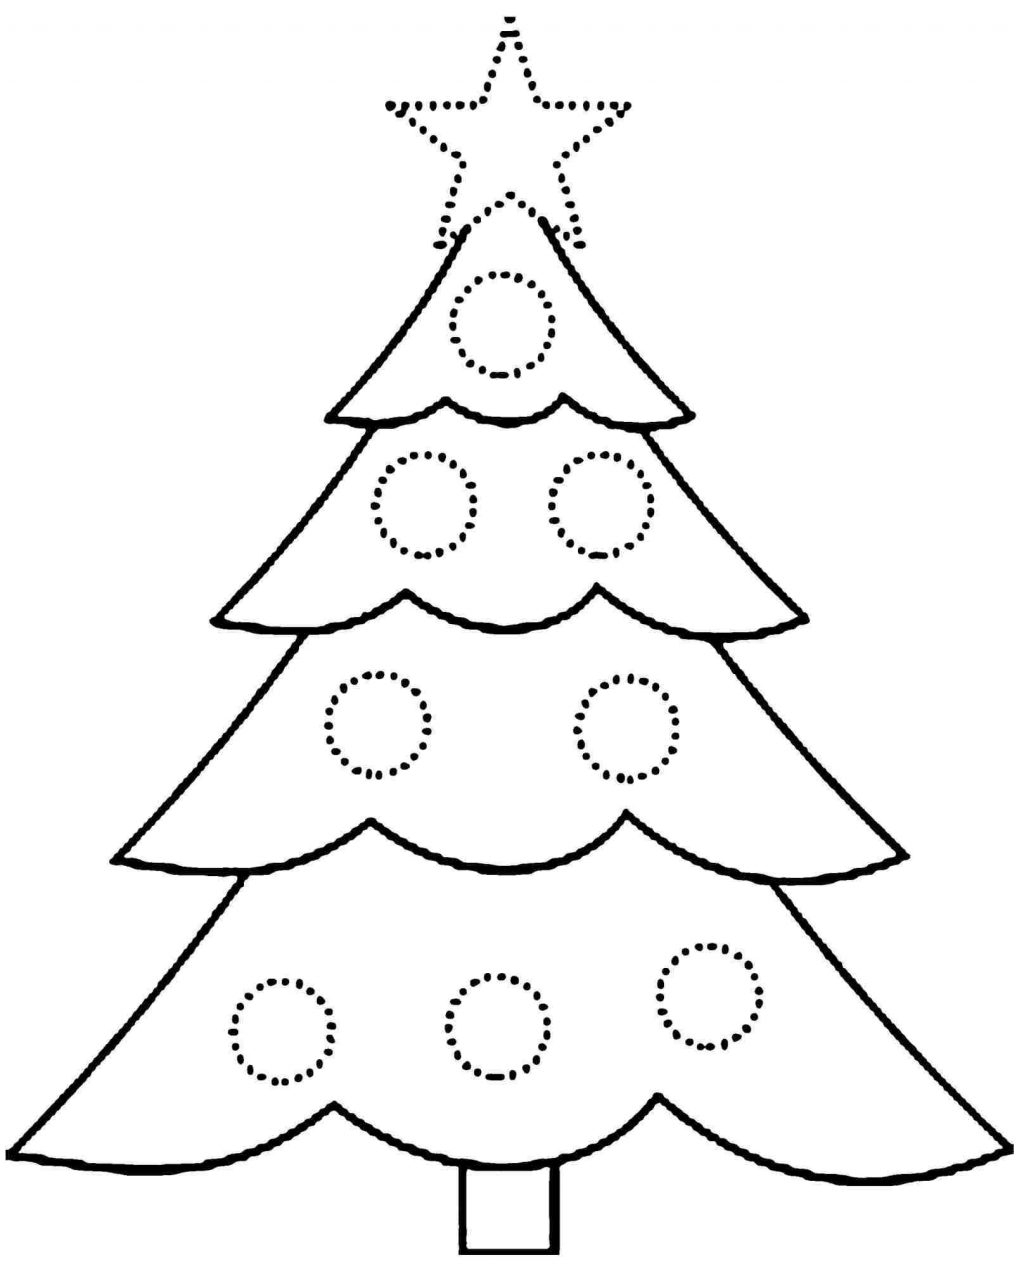 Coloring Pages ~ Simple Christmas Tree Coloring Pages Stunning Sheet - Free Printable Christmas Tree Images